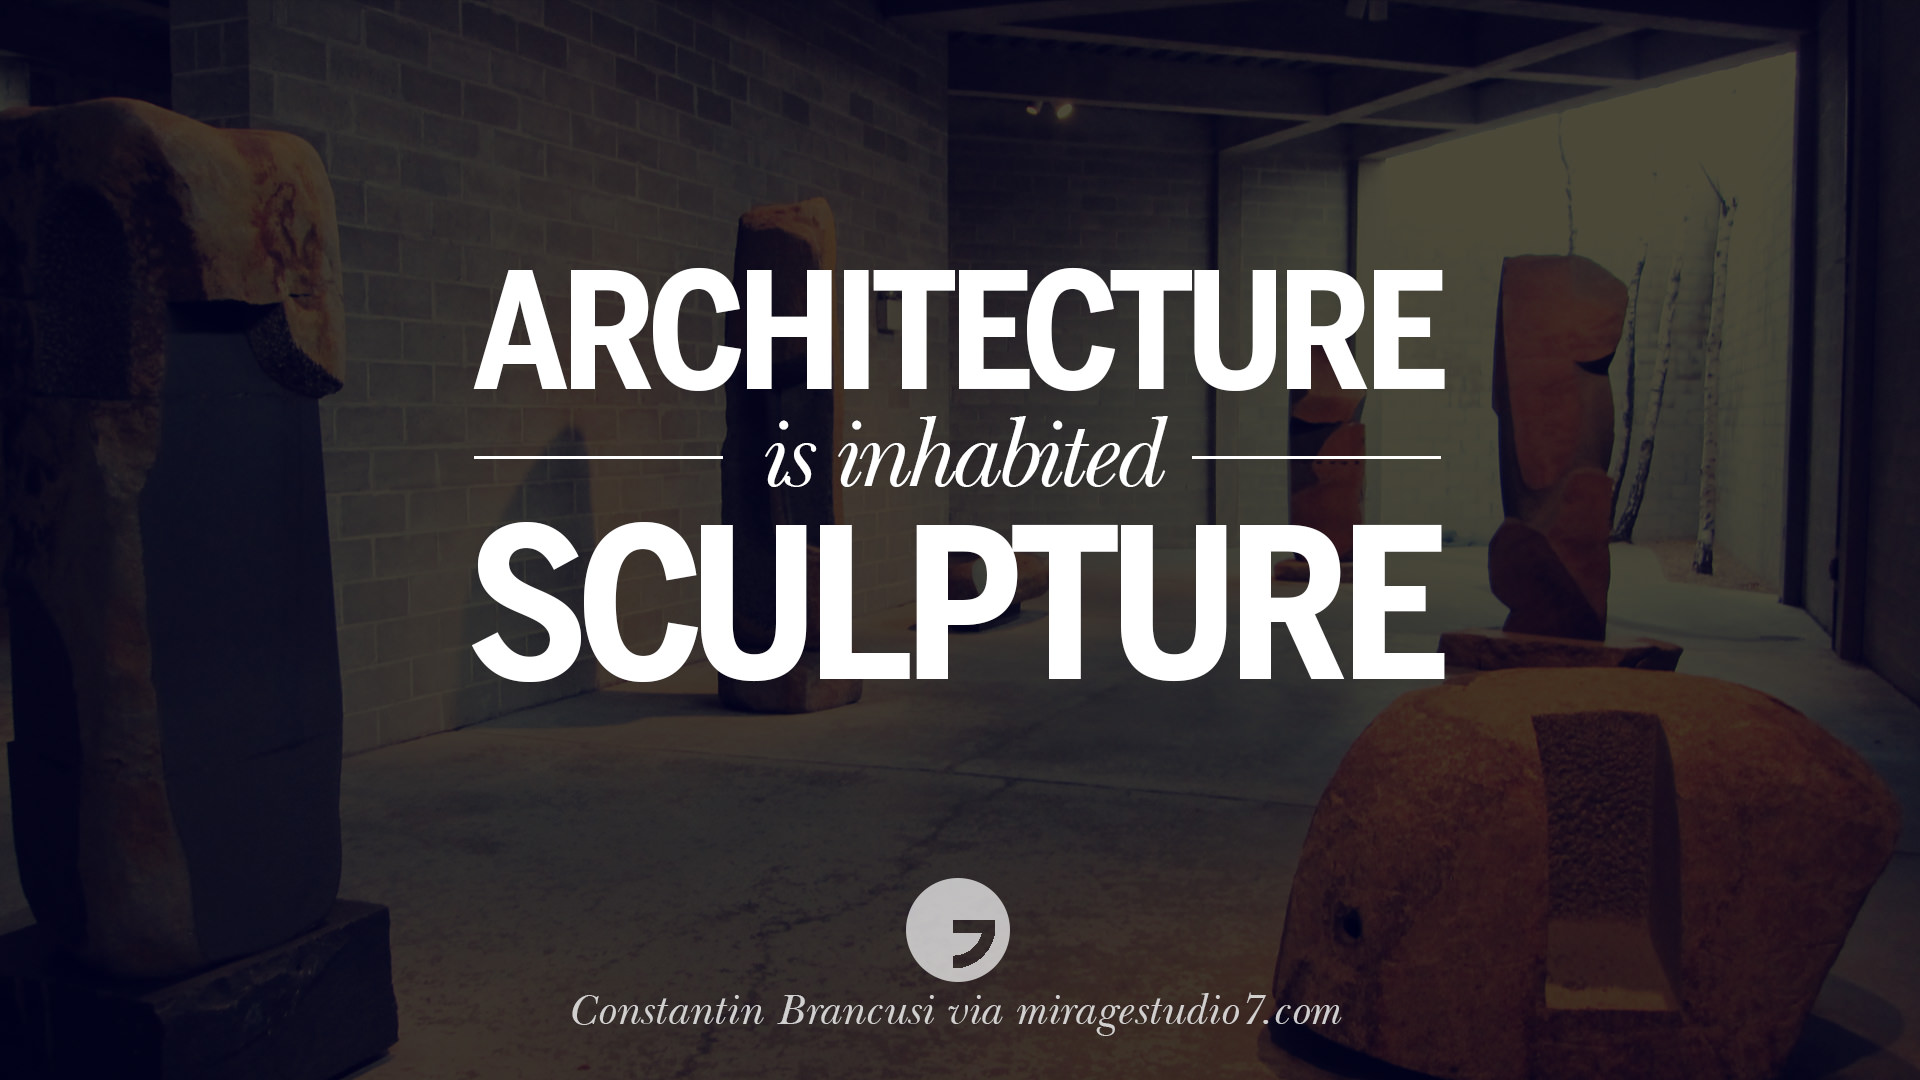 Interior Design Quotes: 28 Inspirational Architecture Quotes By Famous Architects